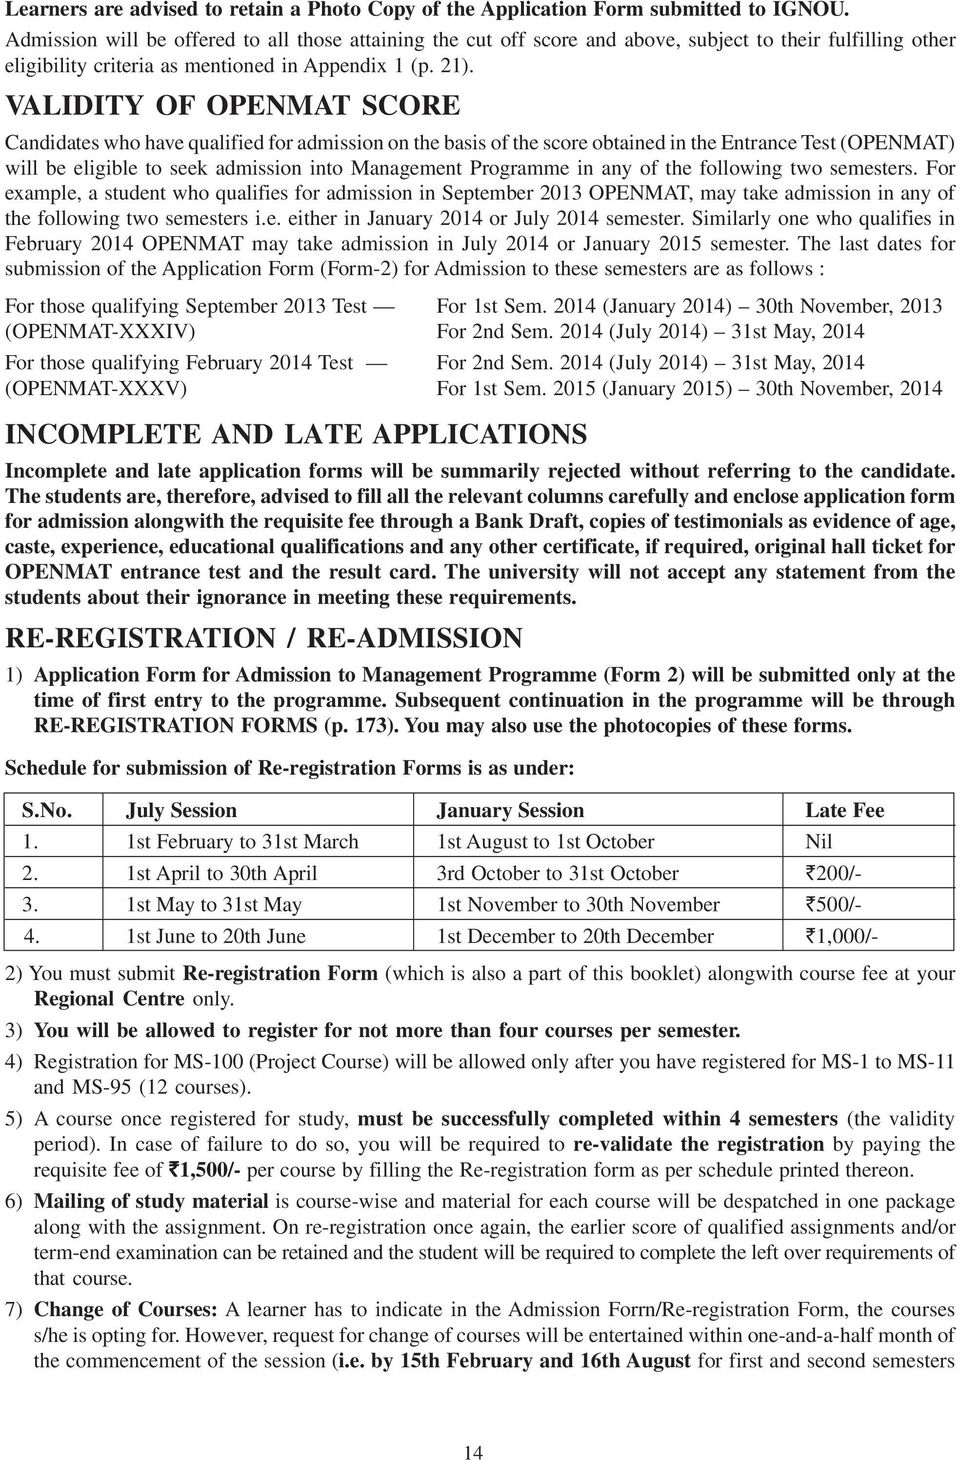 VALIDITY OF OPENMAT SCORE Candidates who have qualified for admission on the basis of the score obtained in the Entrance Test (OPENMAT) will be eligible to seek admission into Management Programme in